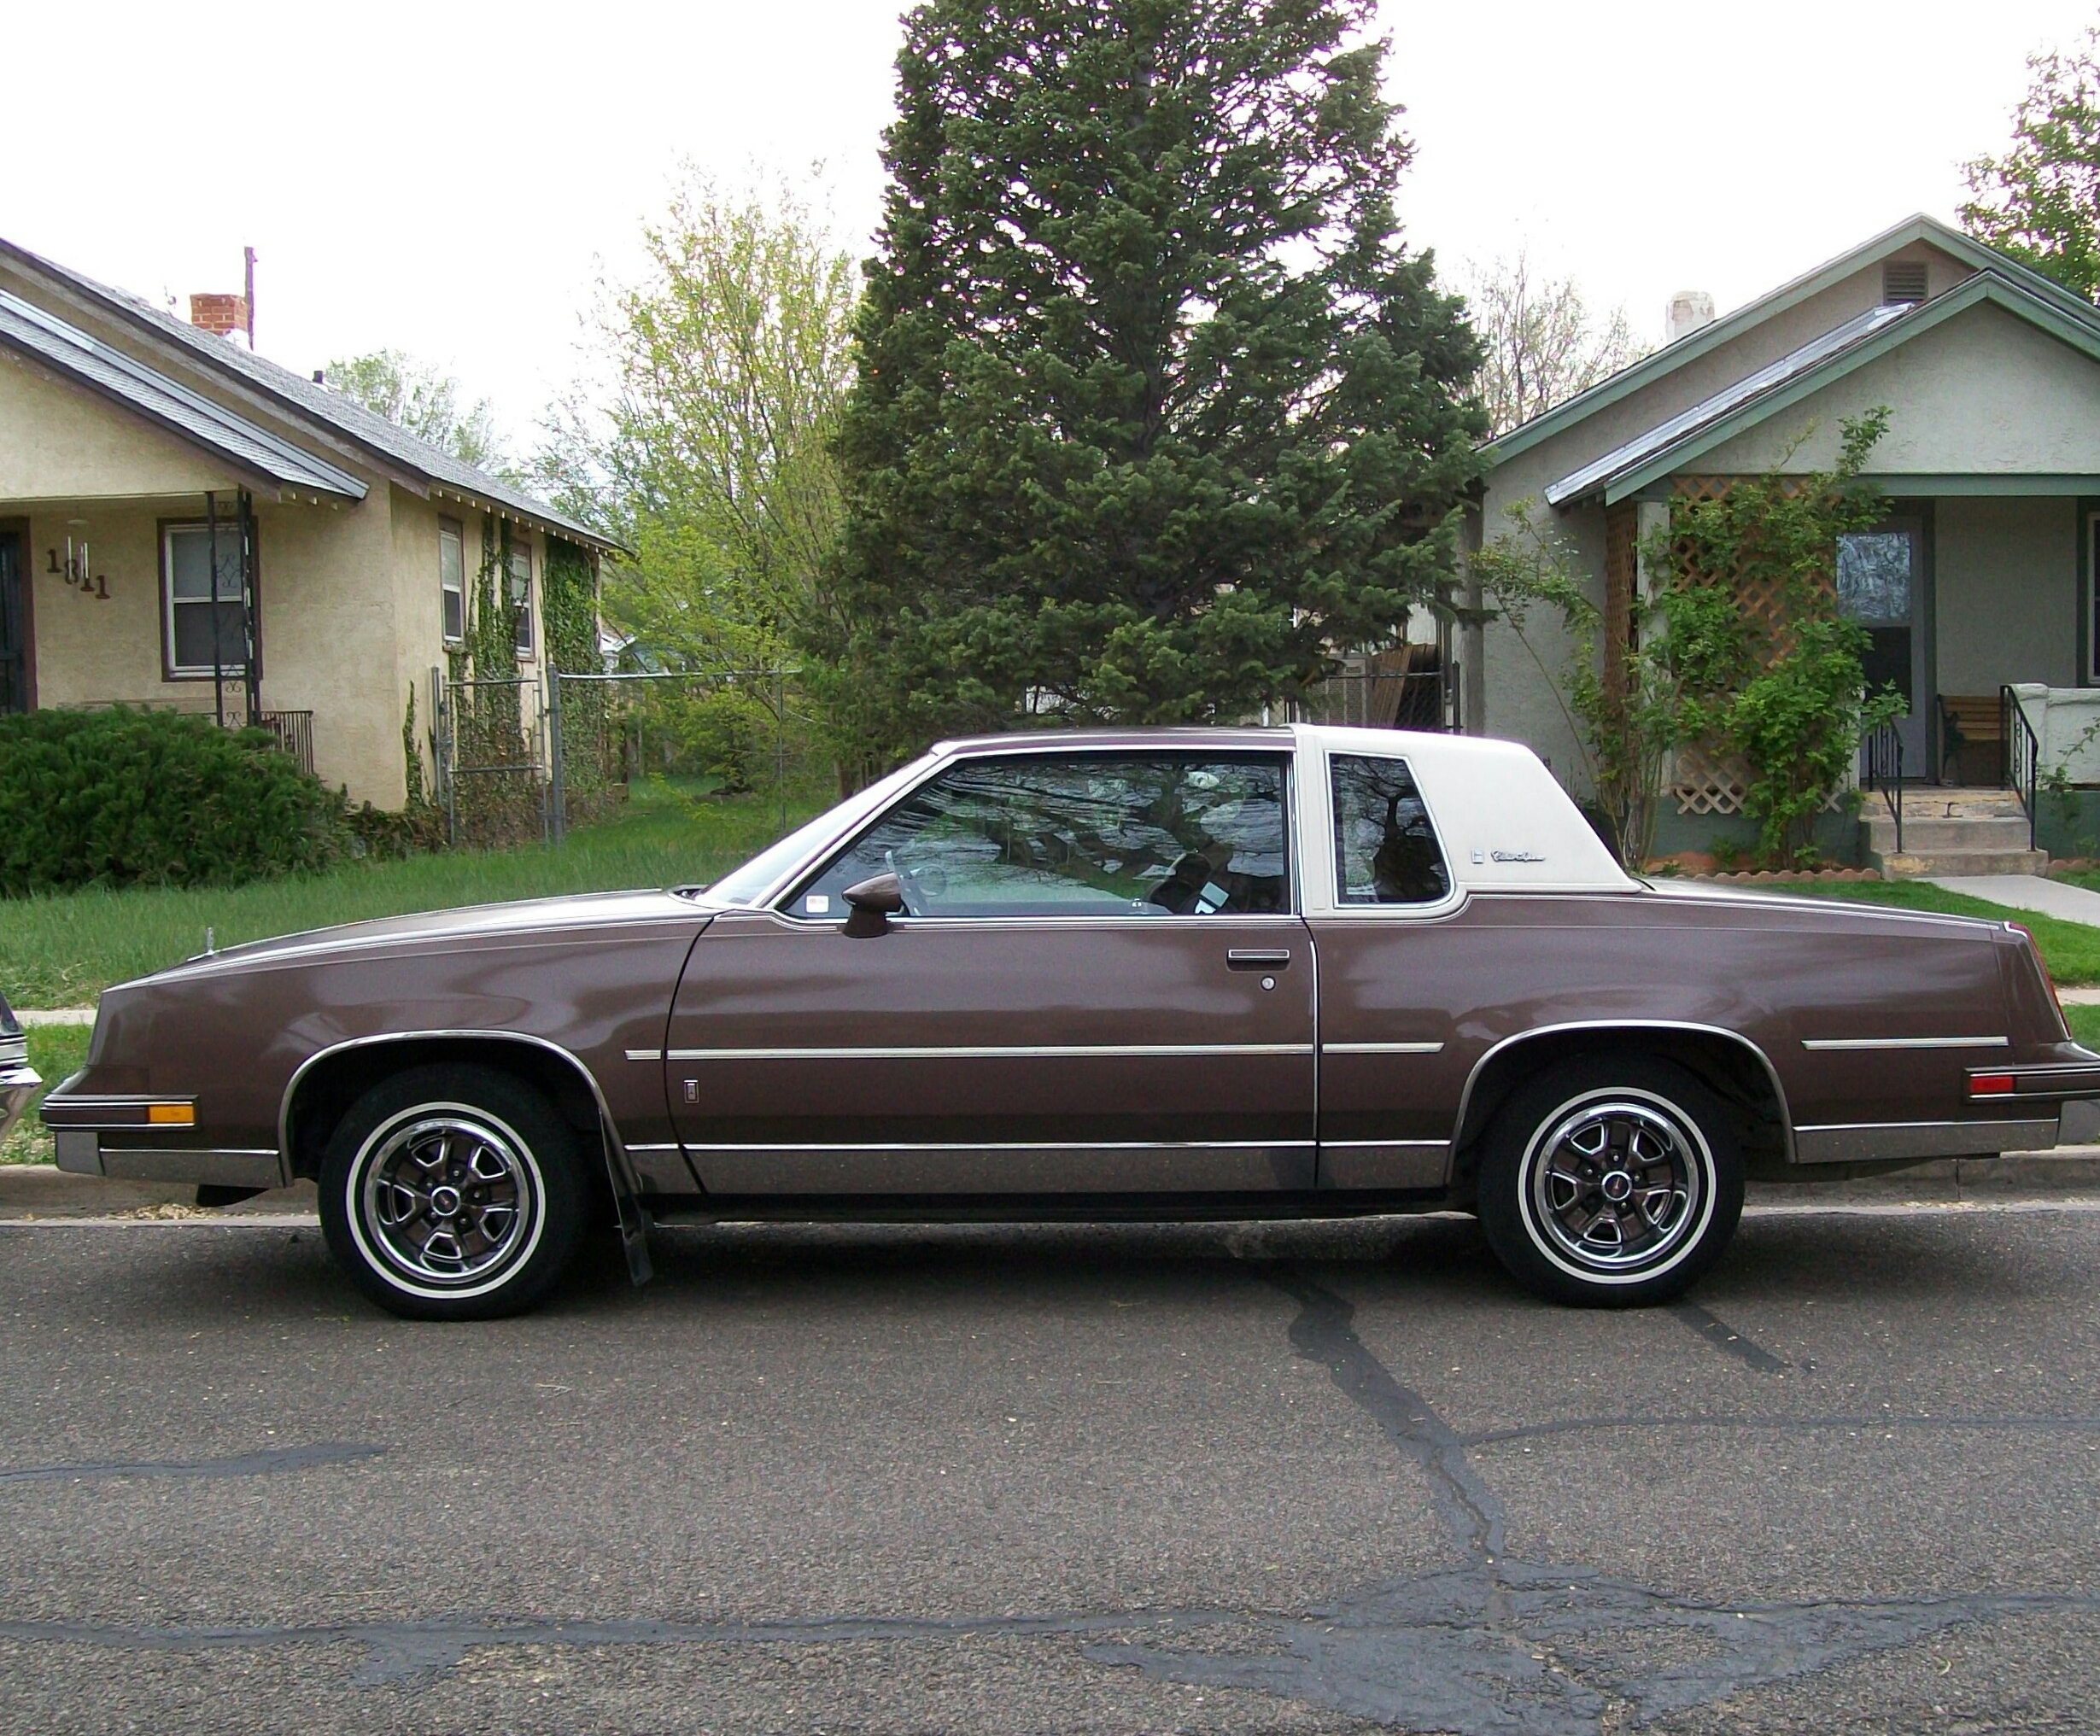 1984 Oldsmobile Cutlass-Supreme